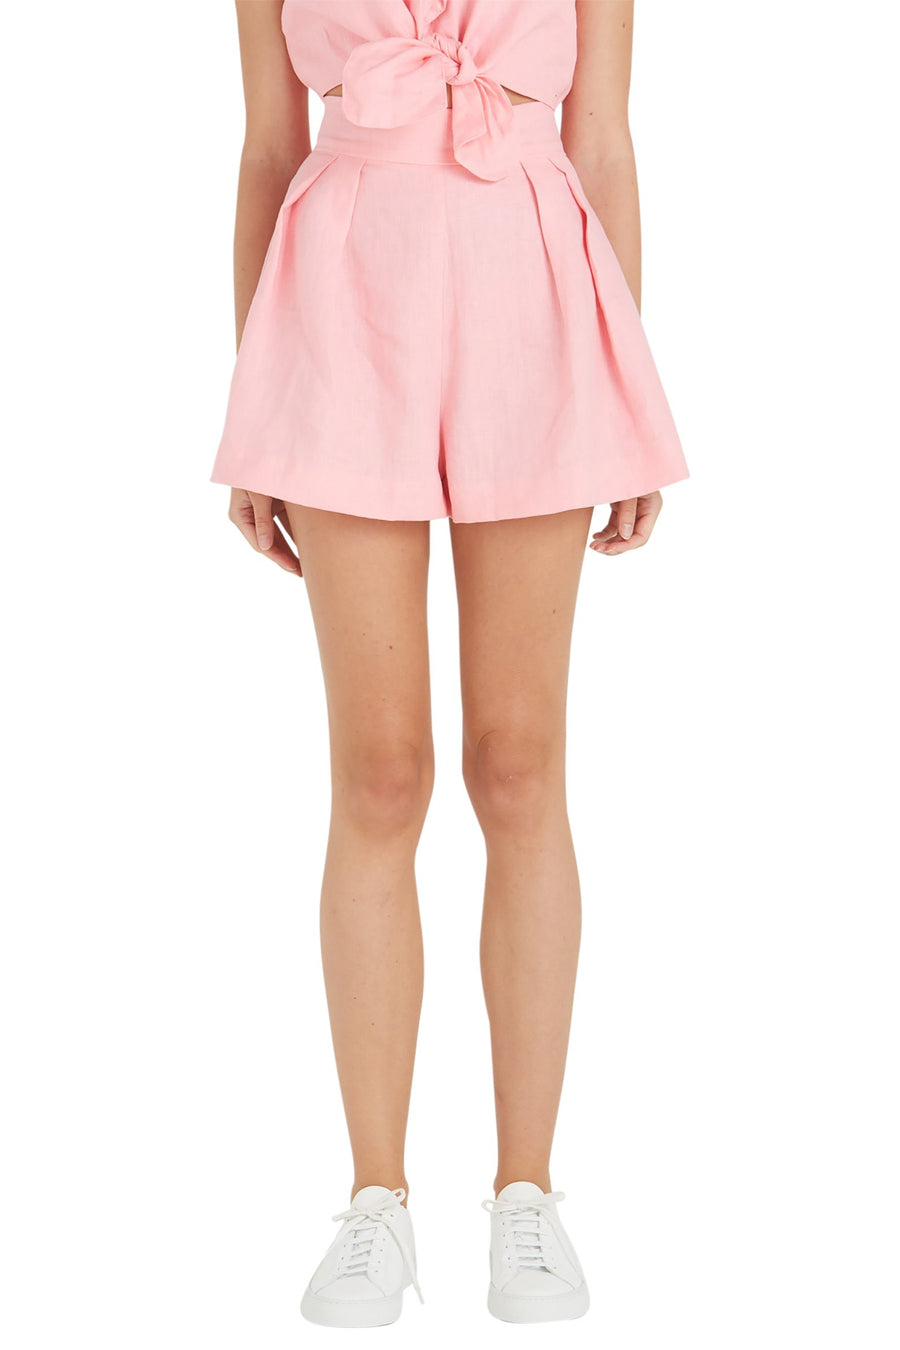 Faithfull The Brand Ondine Shorts in Plain Rose The New Trend